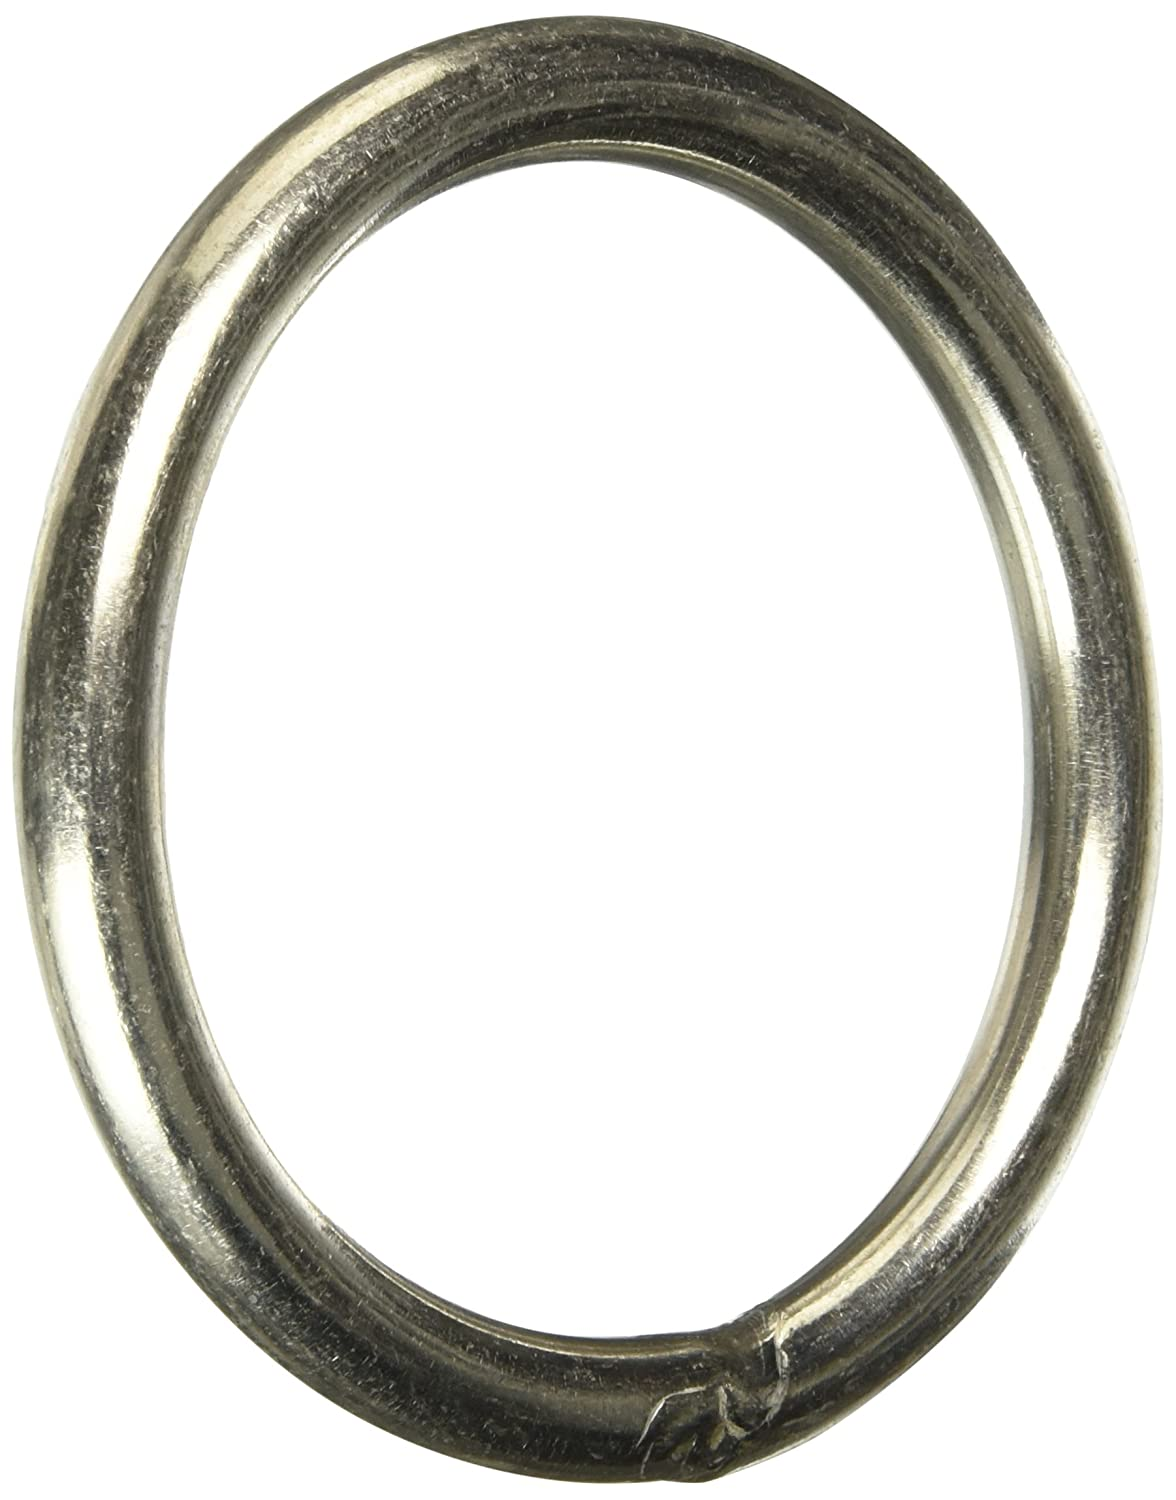 Uxcell a15060500ux0114 80mm x 8mm 304 Stainless Steel Webbing Strapping Welded O Rings